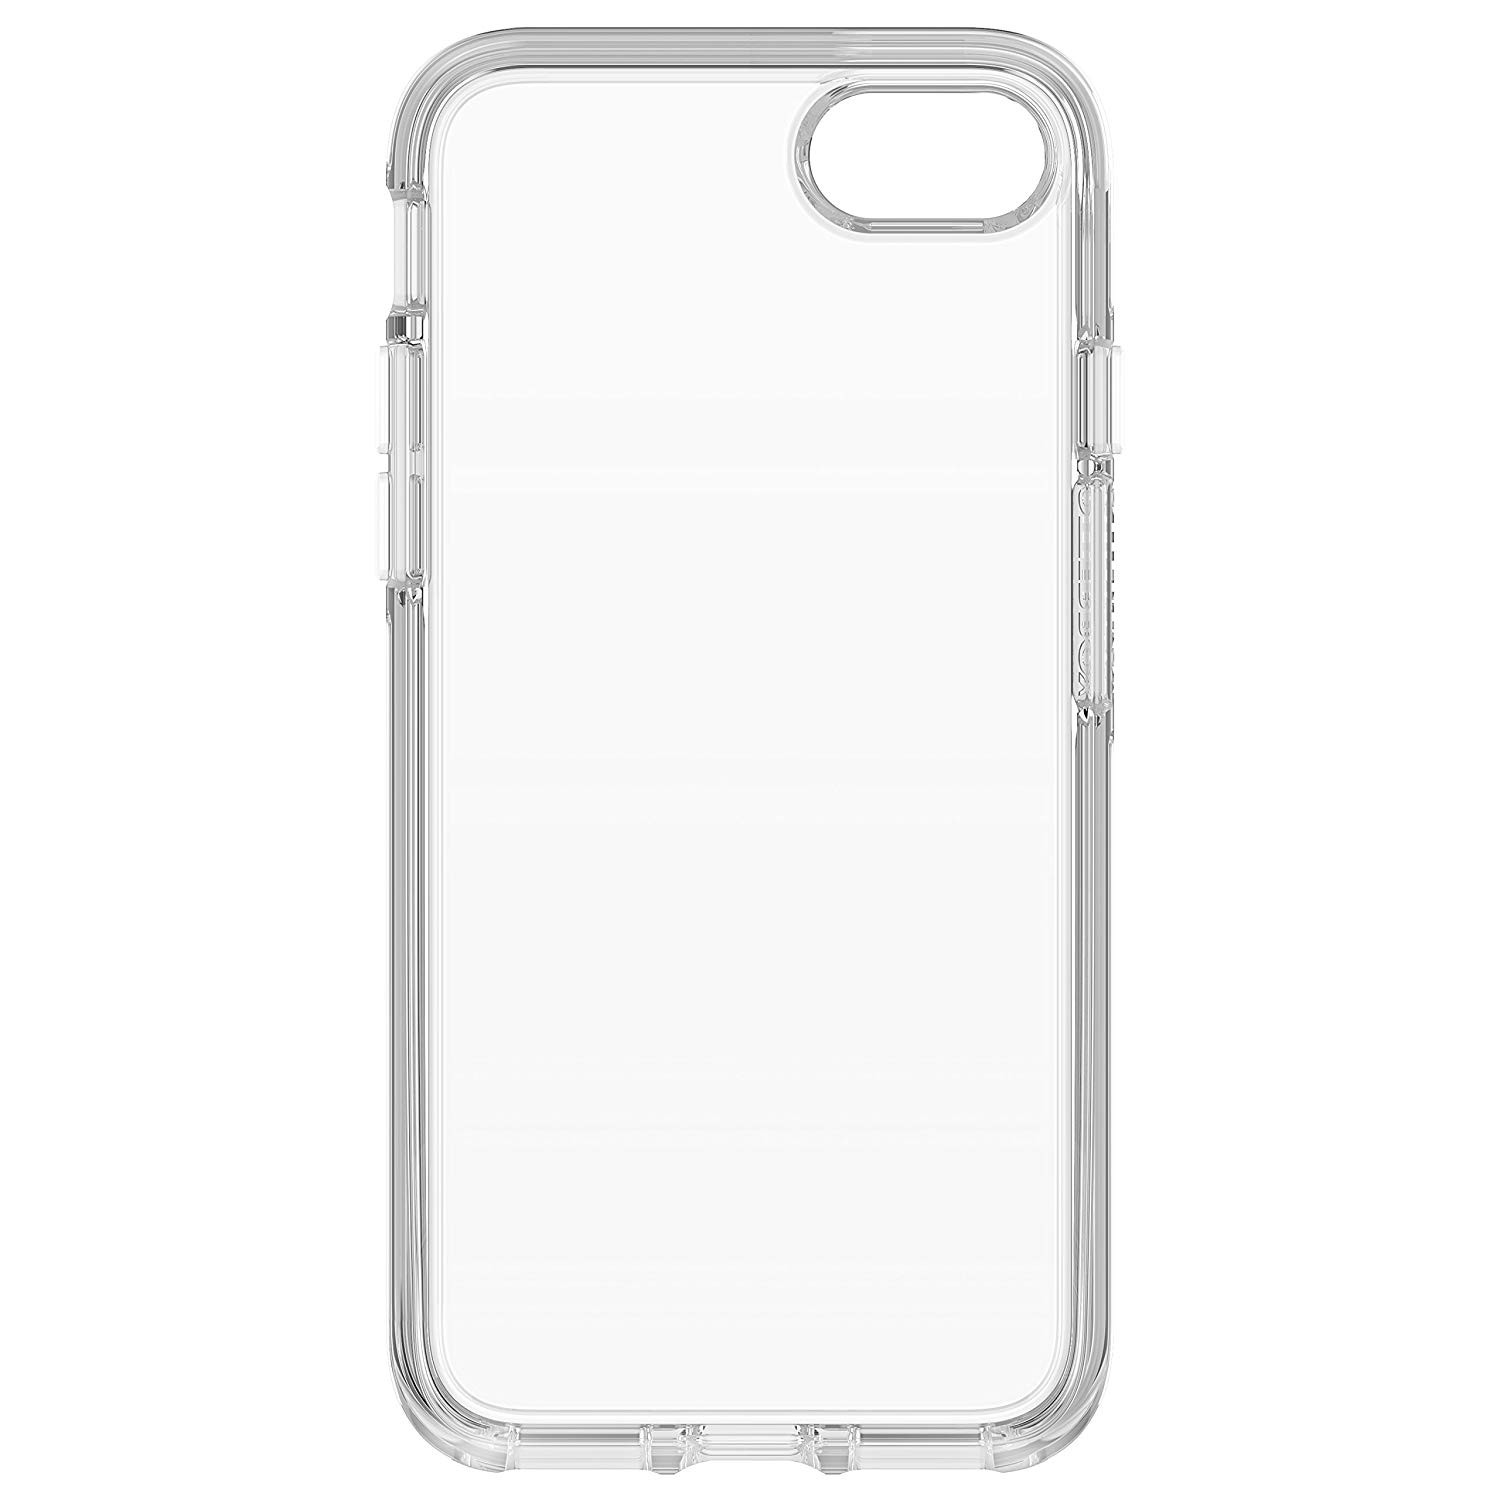 OtterBox Symmetry Clear Series Case for iPhone 8/7/SE (Gen 2) - Clear,  77-56719